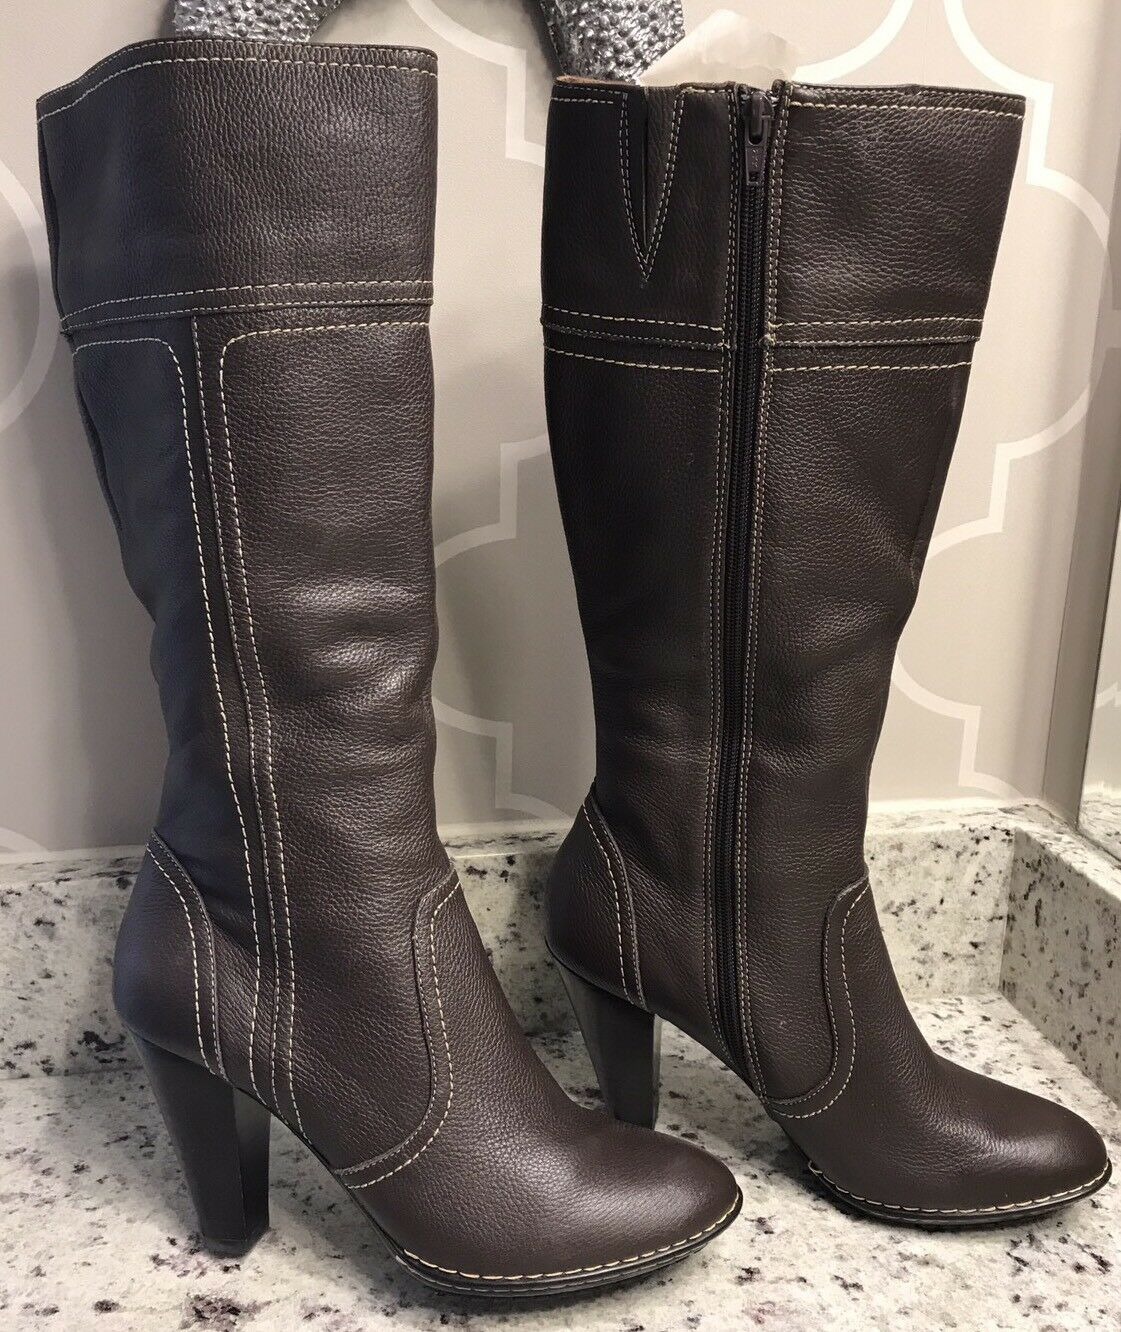 Sofft Women's Brown Leather High Heeled Boots - Size 10M